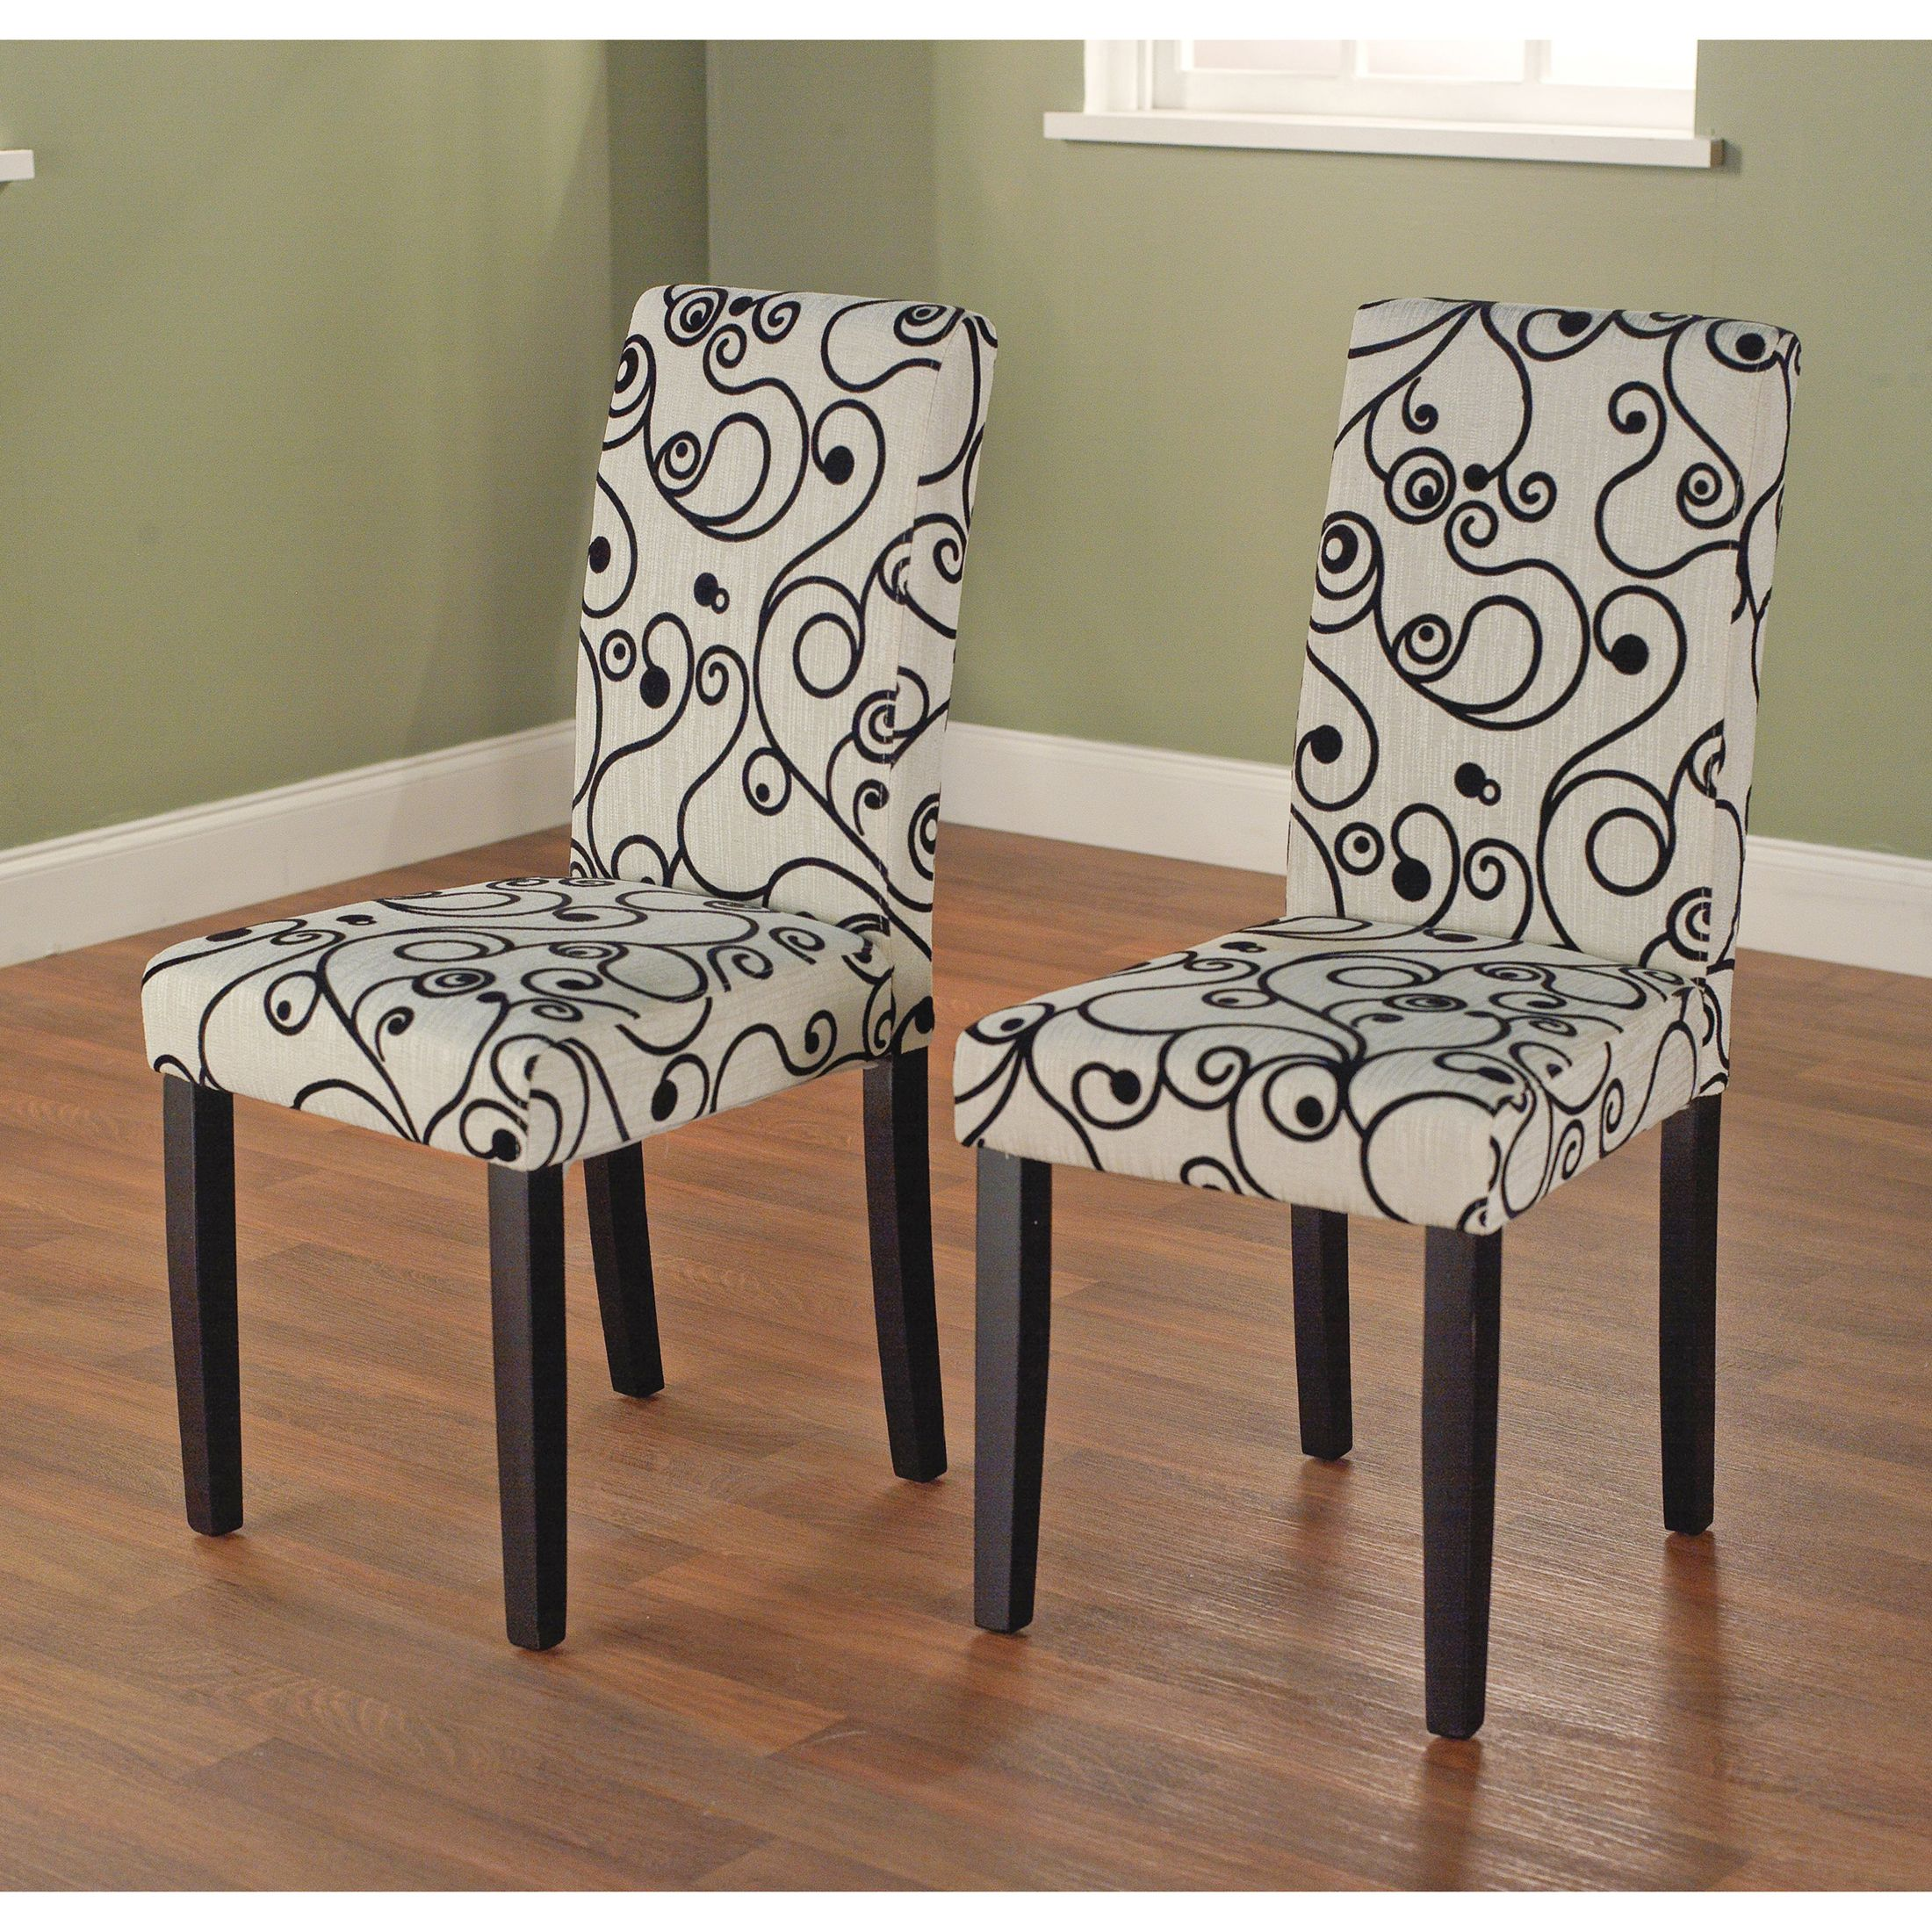 Beautify Your Dining Room With These Chic Wood Chairs Made A Solid Base Lovely Beige And White Fabric Polyester Foam Filling